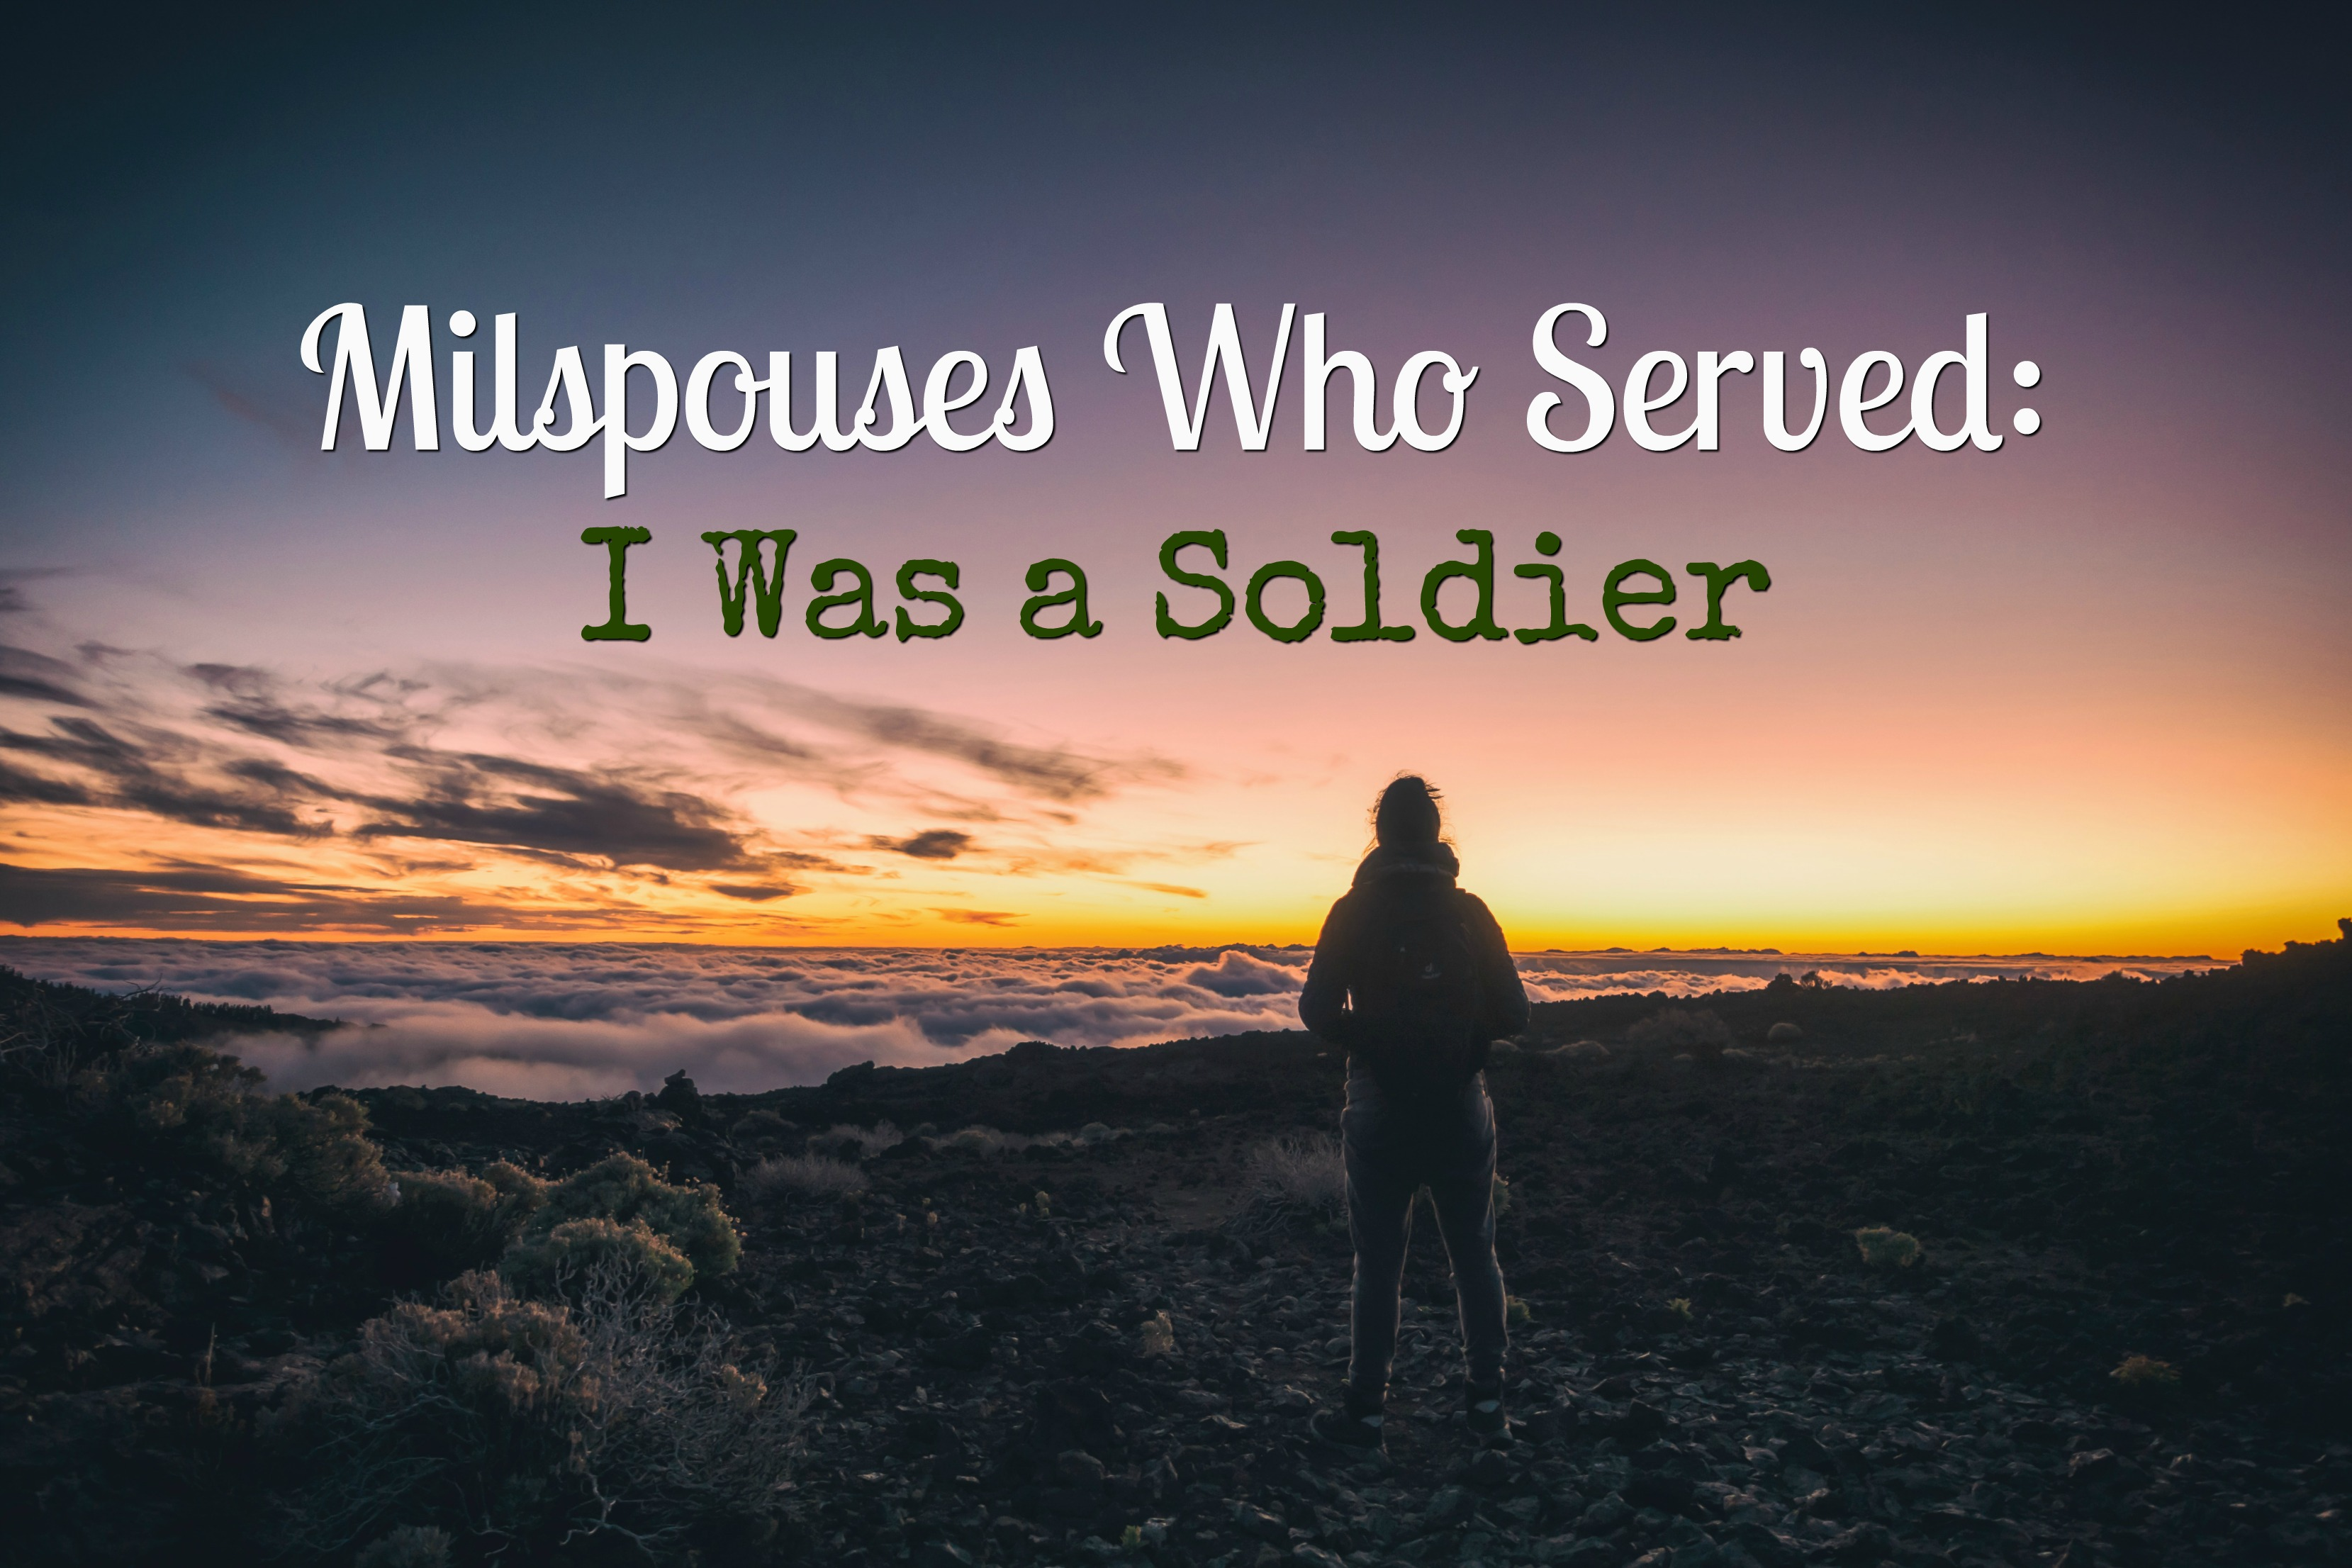 Milspouses Who Served: I Was a Soldier